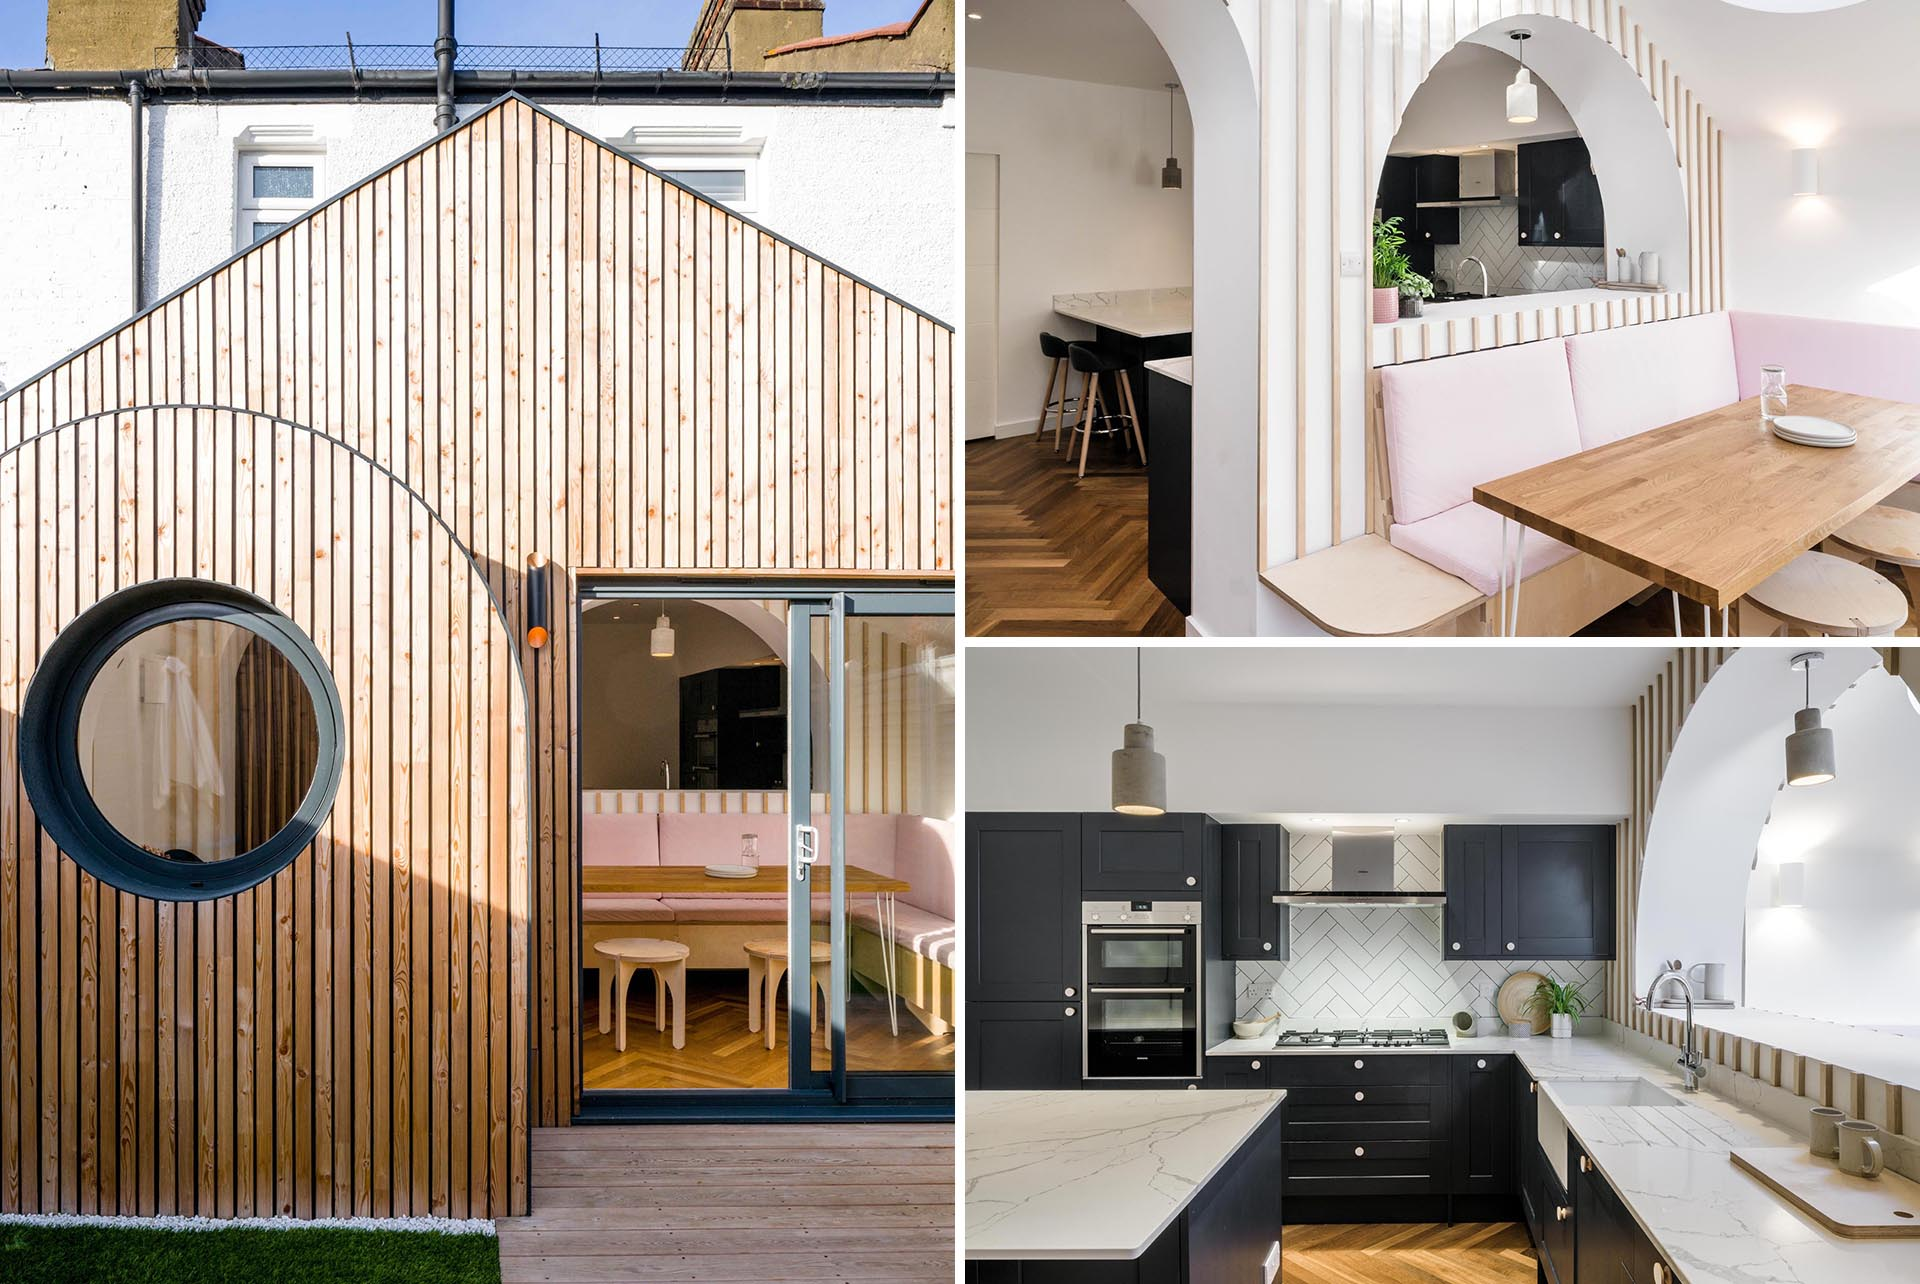 A modern house addition with a wood exterior and an interior with a dining area and kitchen.